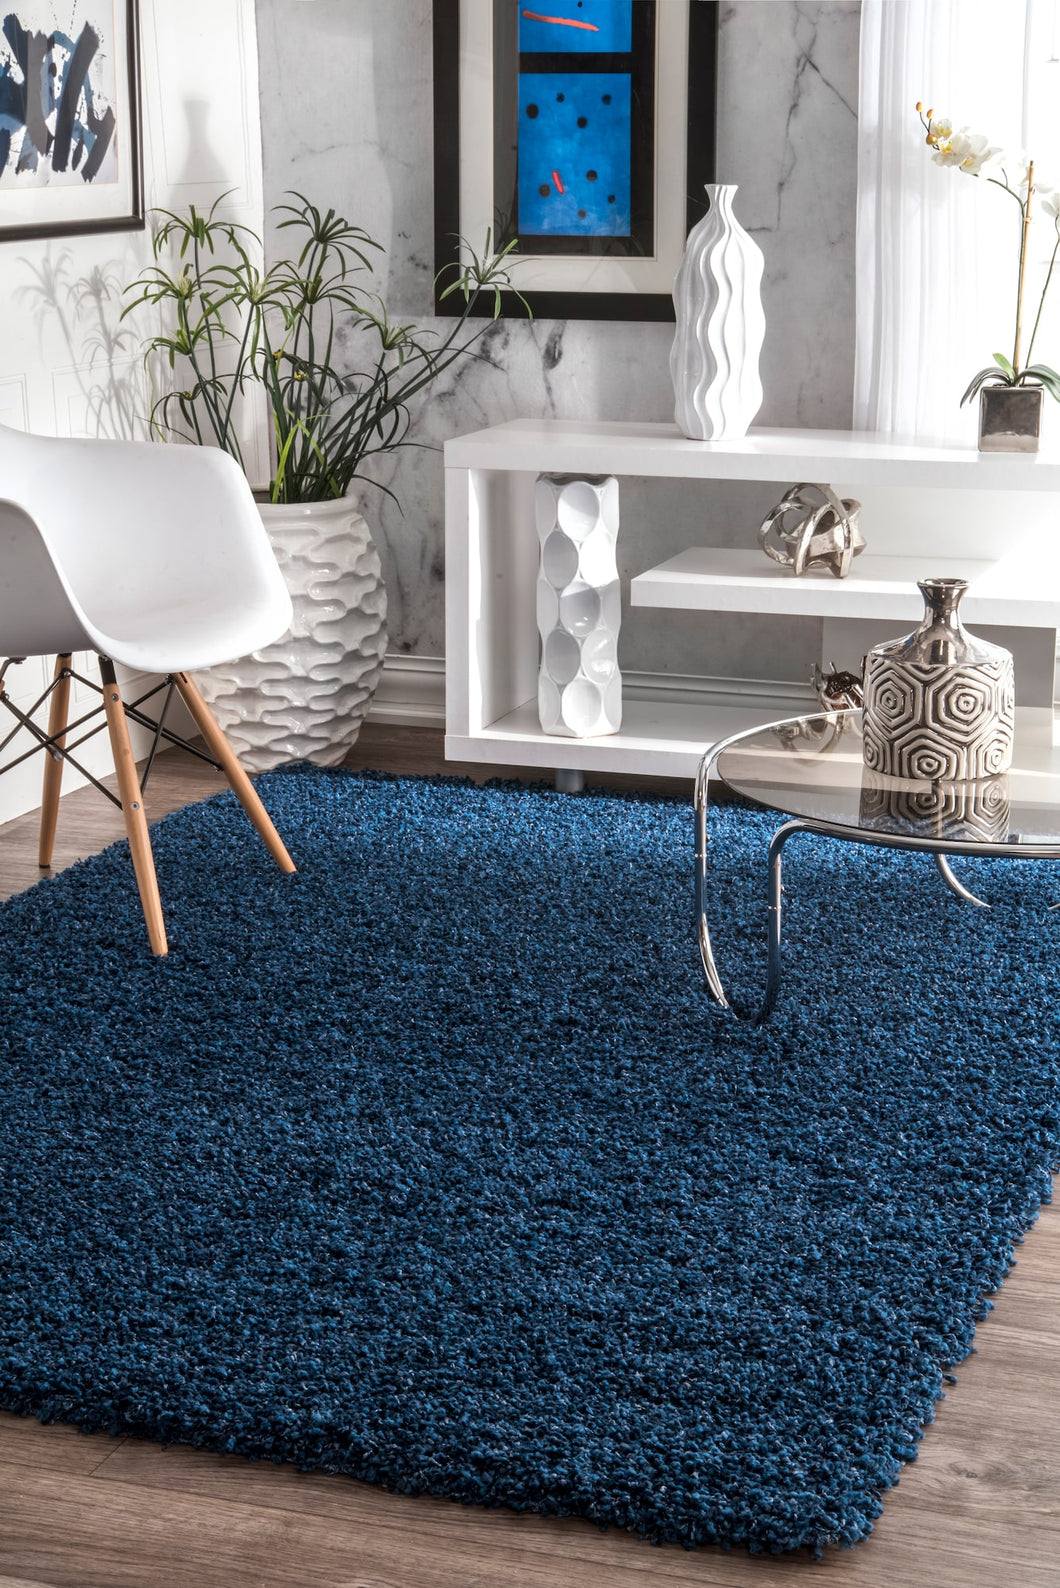 Comforting Office Rug in Blue Plush Shag